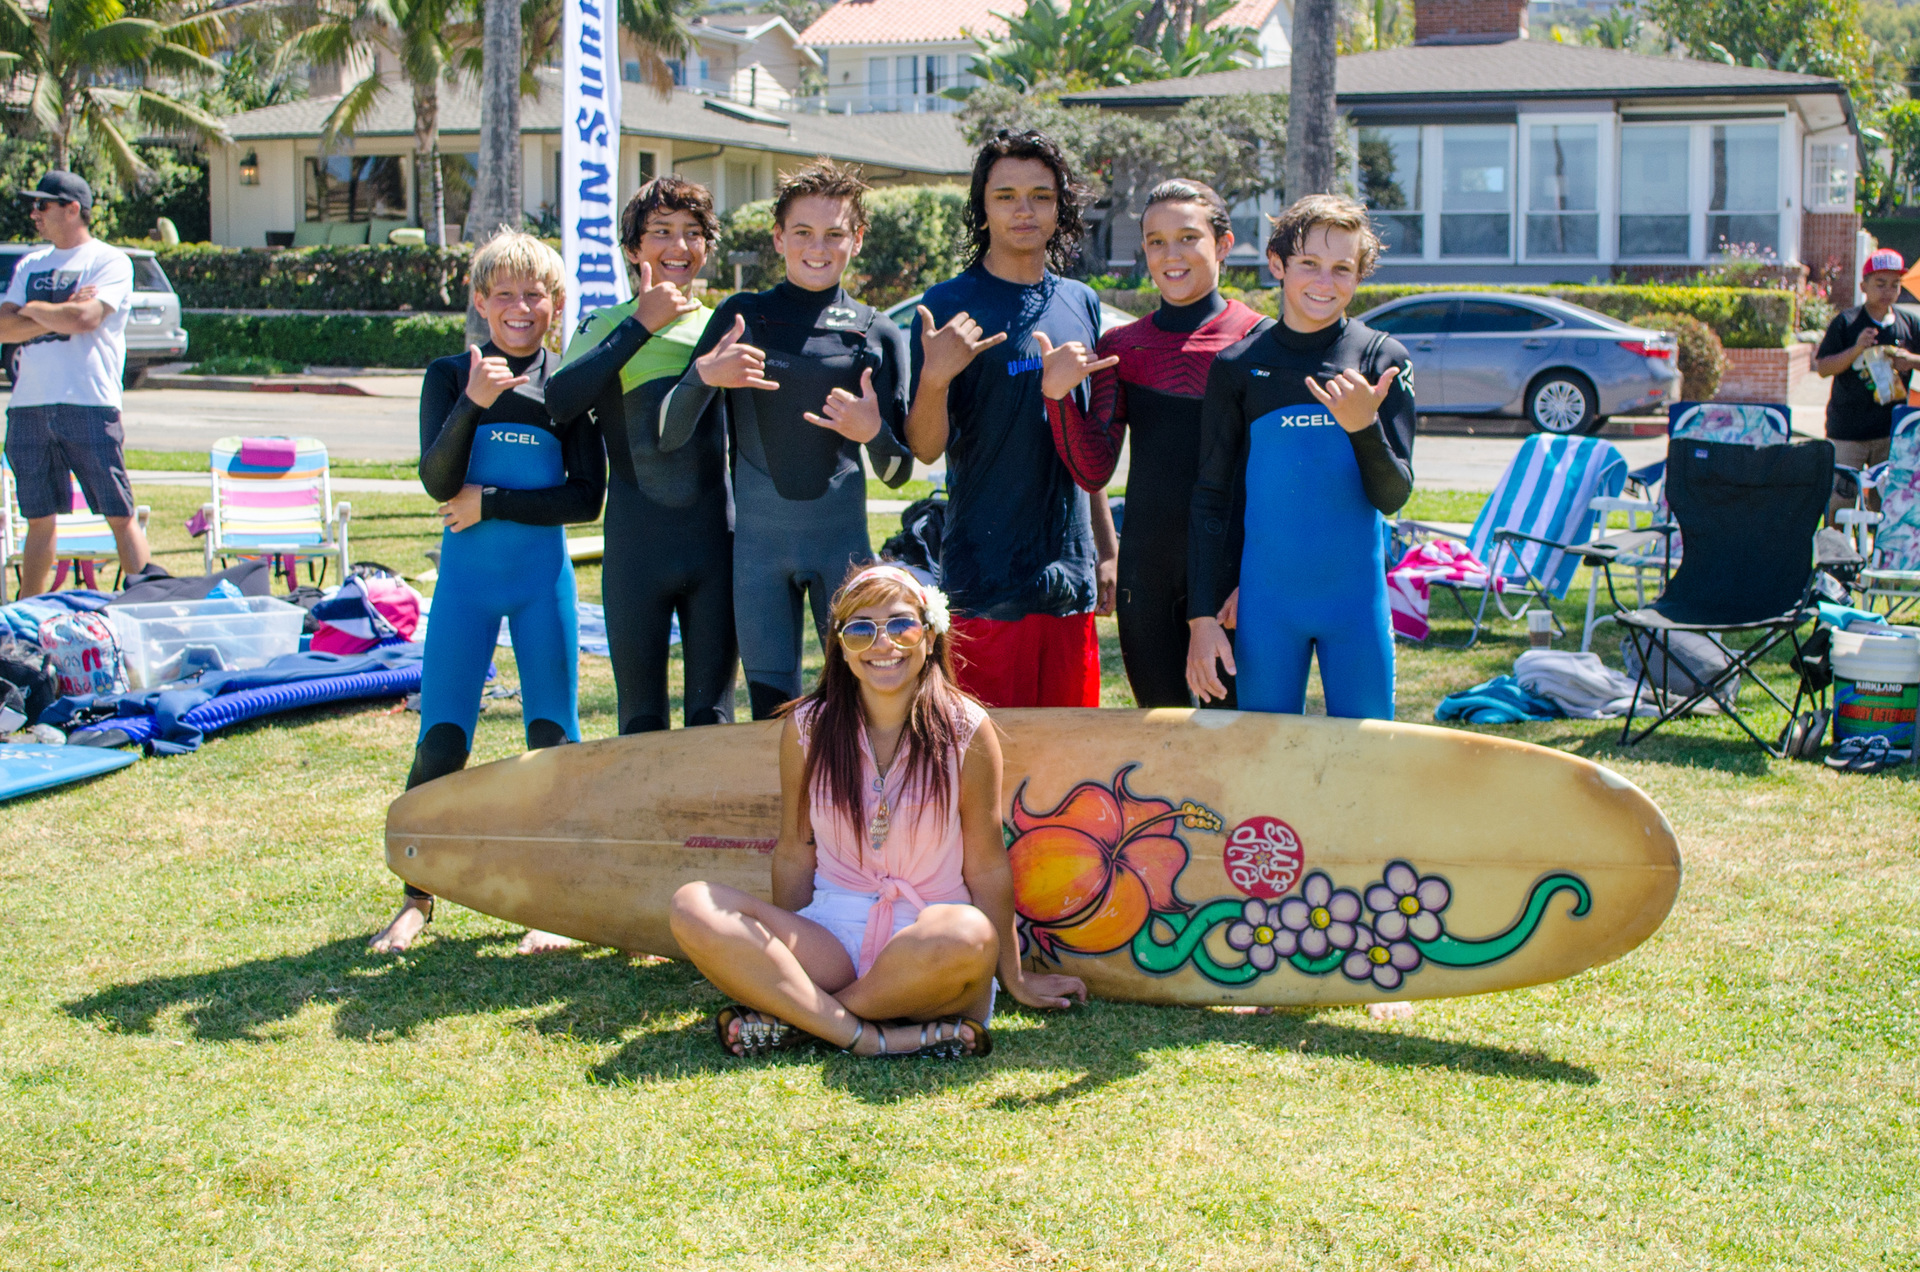 20150418_SouthPoint-UrbanSurf-Event_DSC_0350.jpg